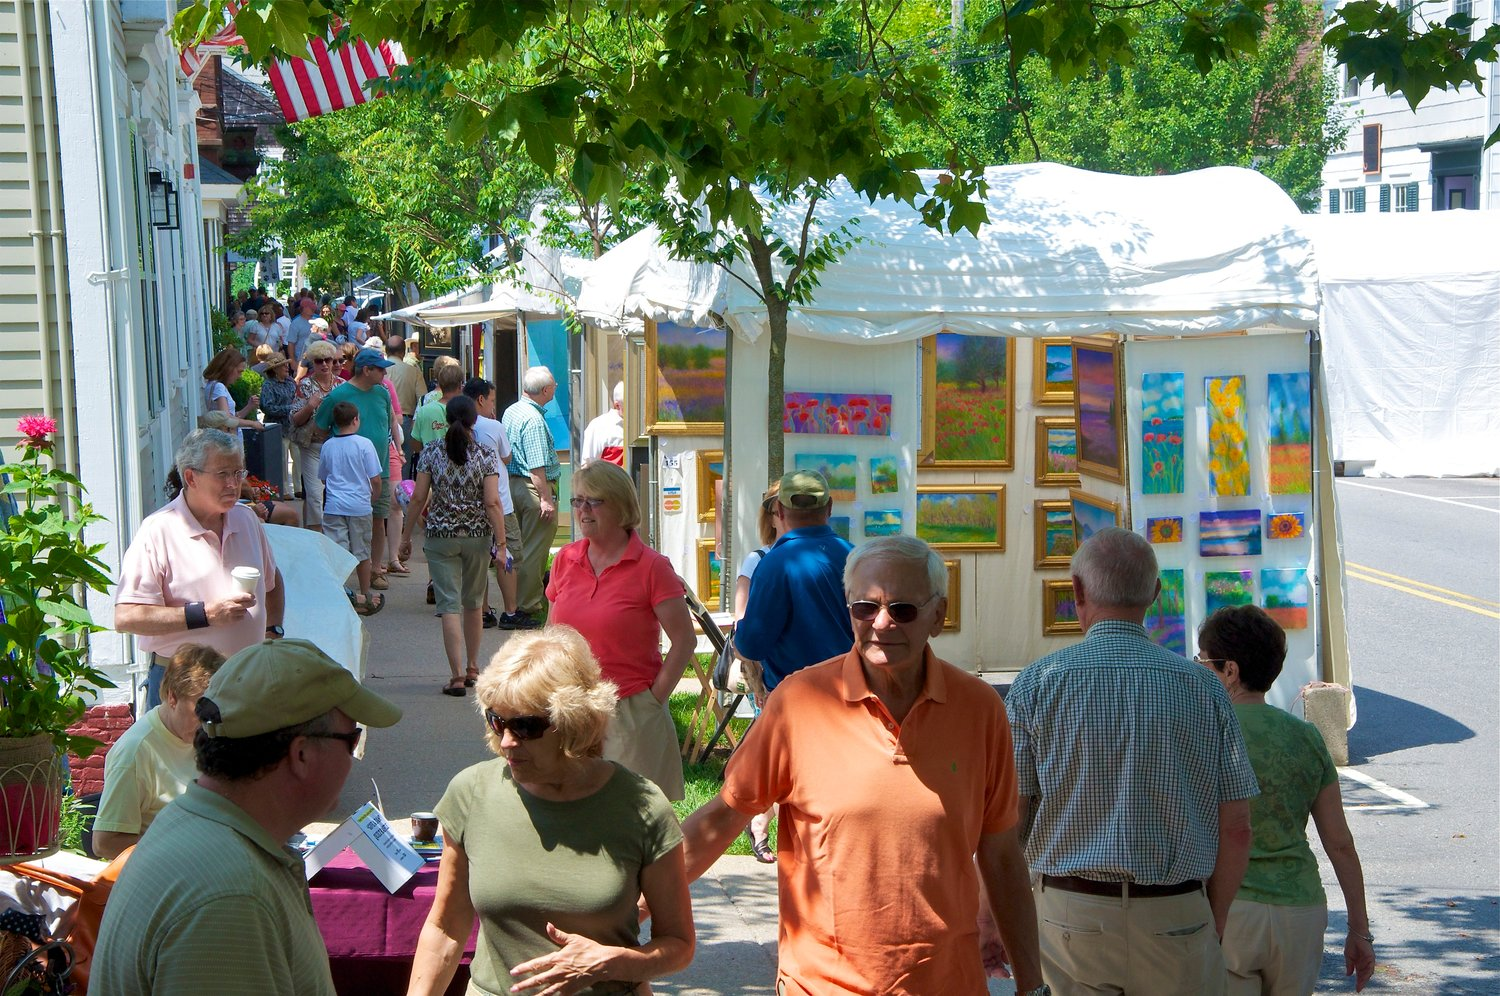 July 13-14: Wickford Arts Festival